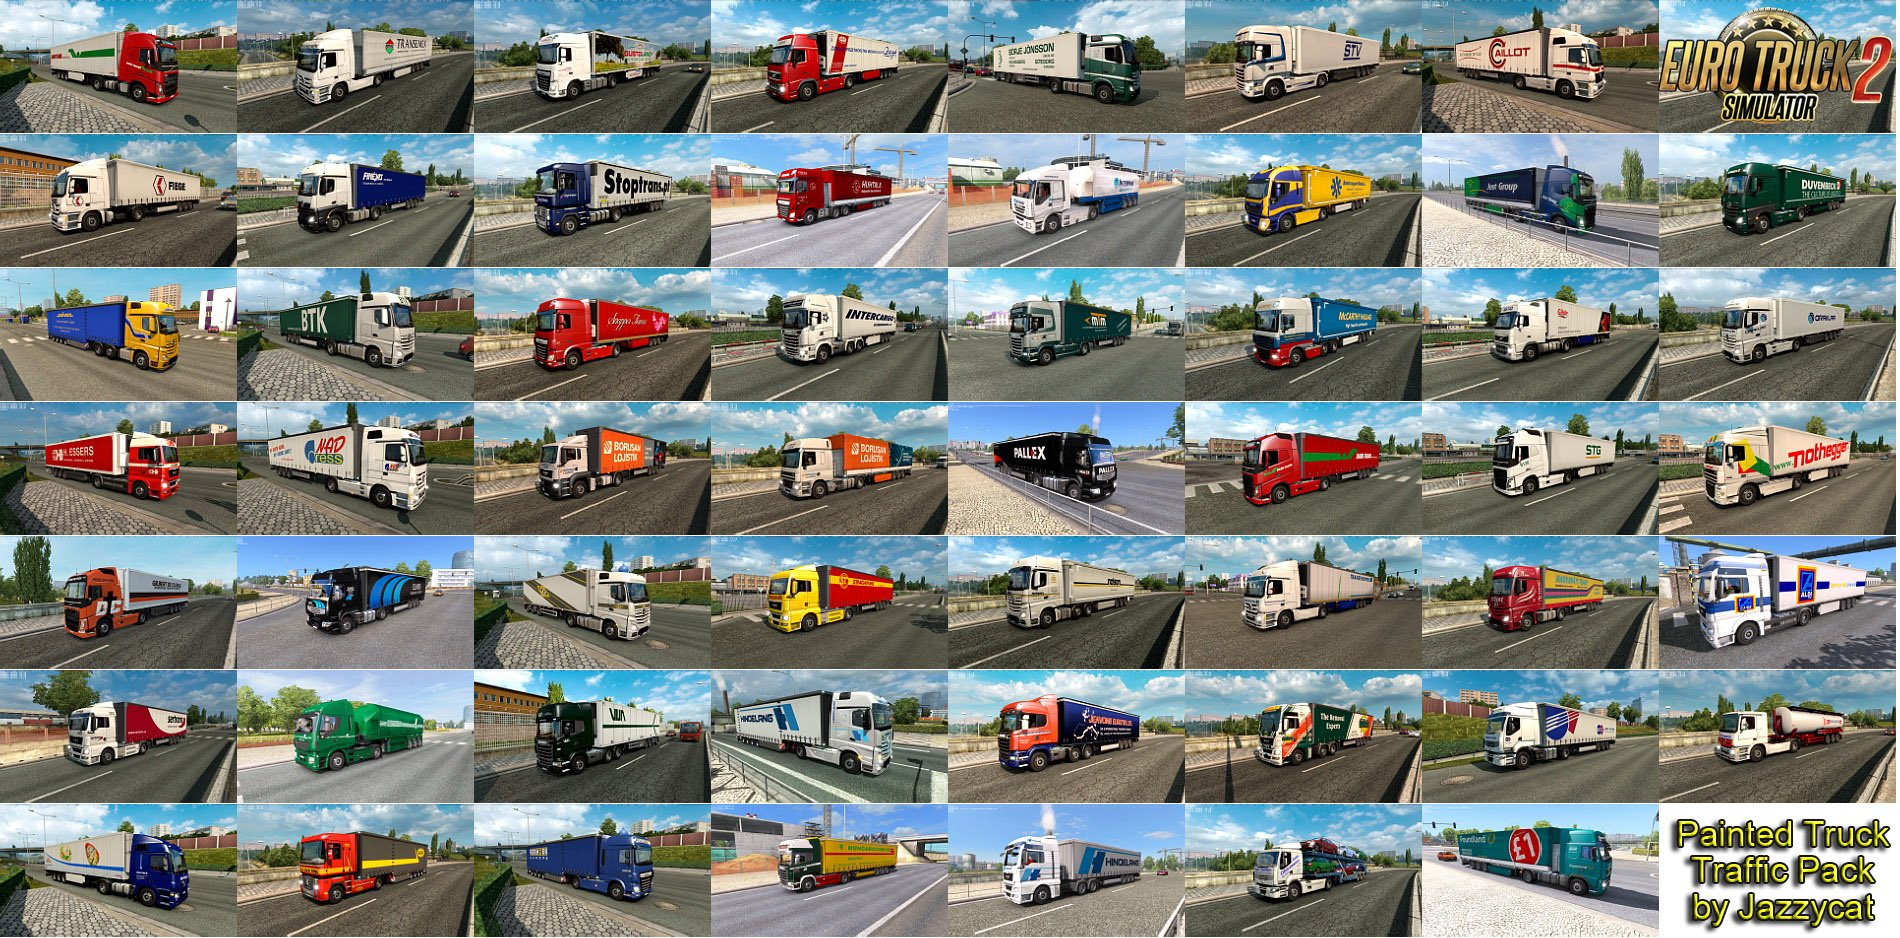 Painted Truck Traffic Pack v5.1 by Jazzycat